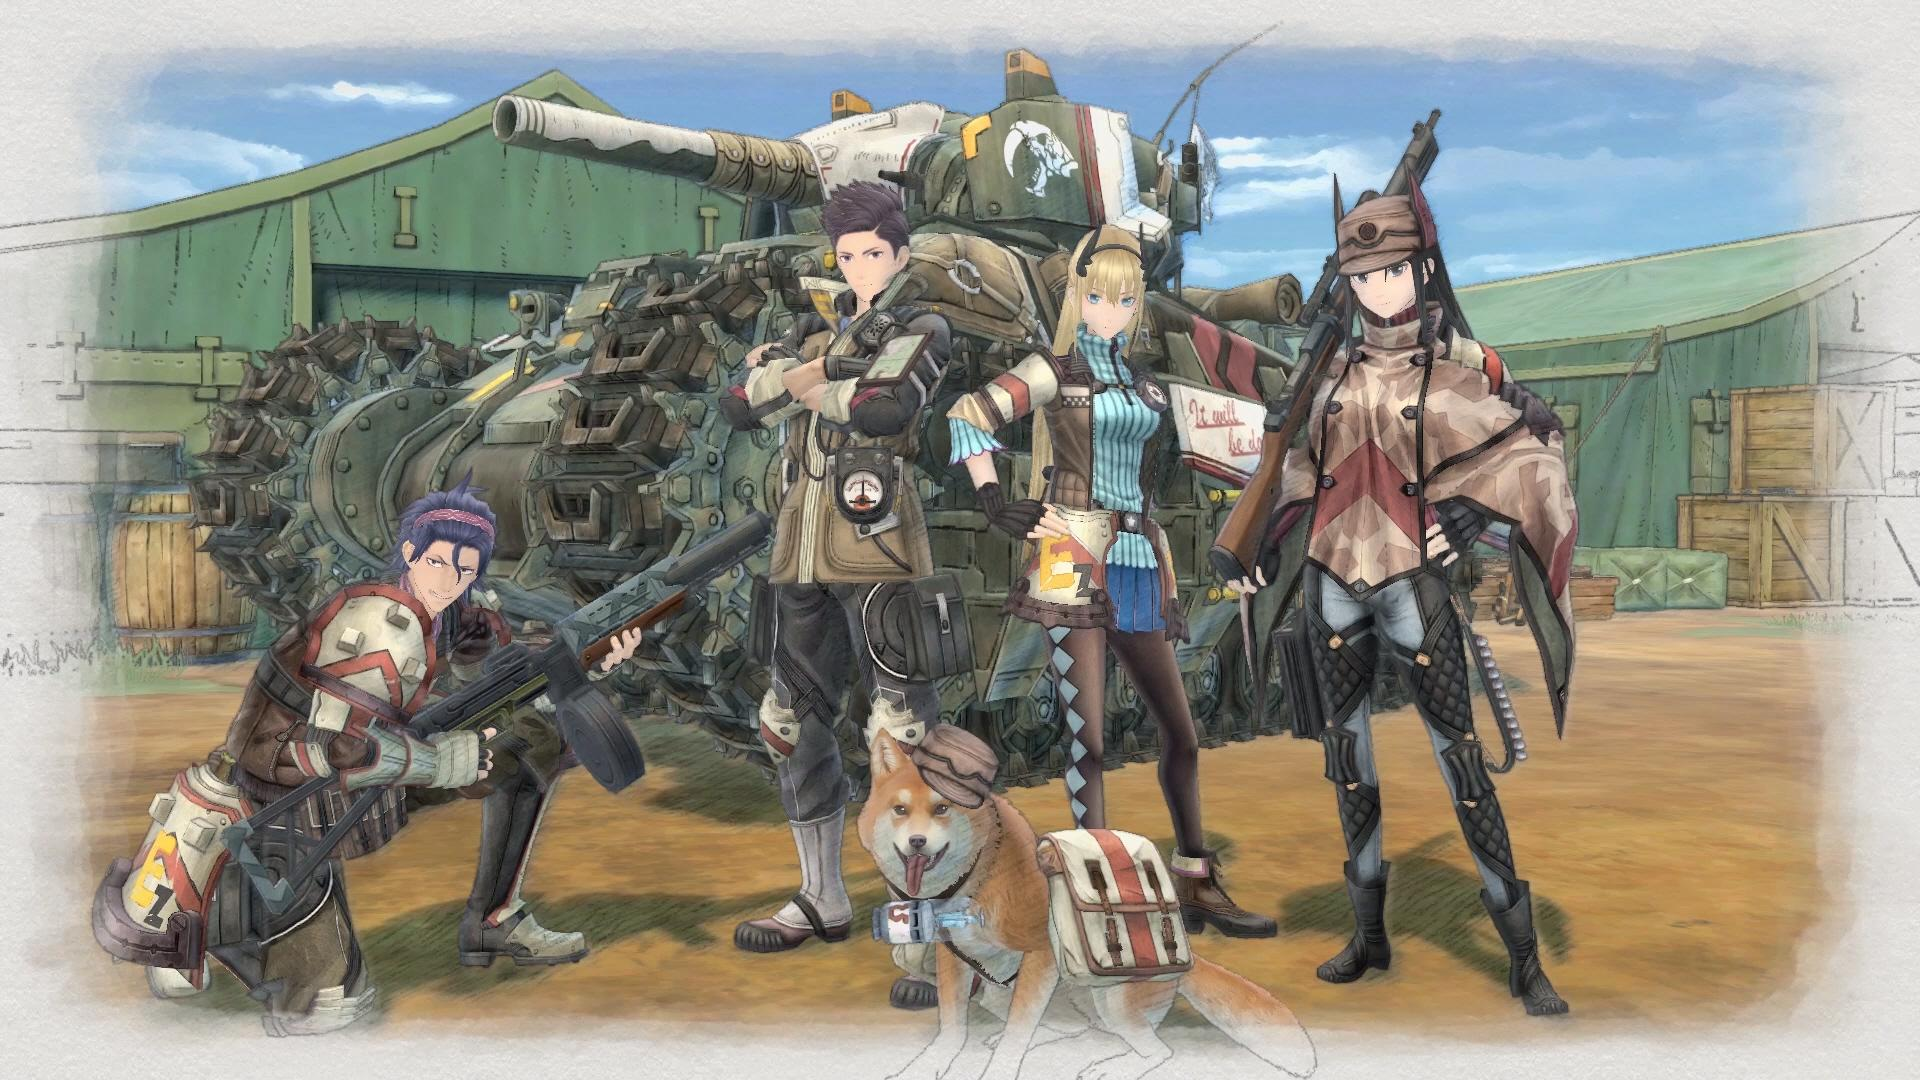 Sega to Release Valkyria Chronicles 4 in 2018